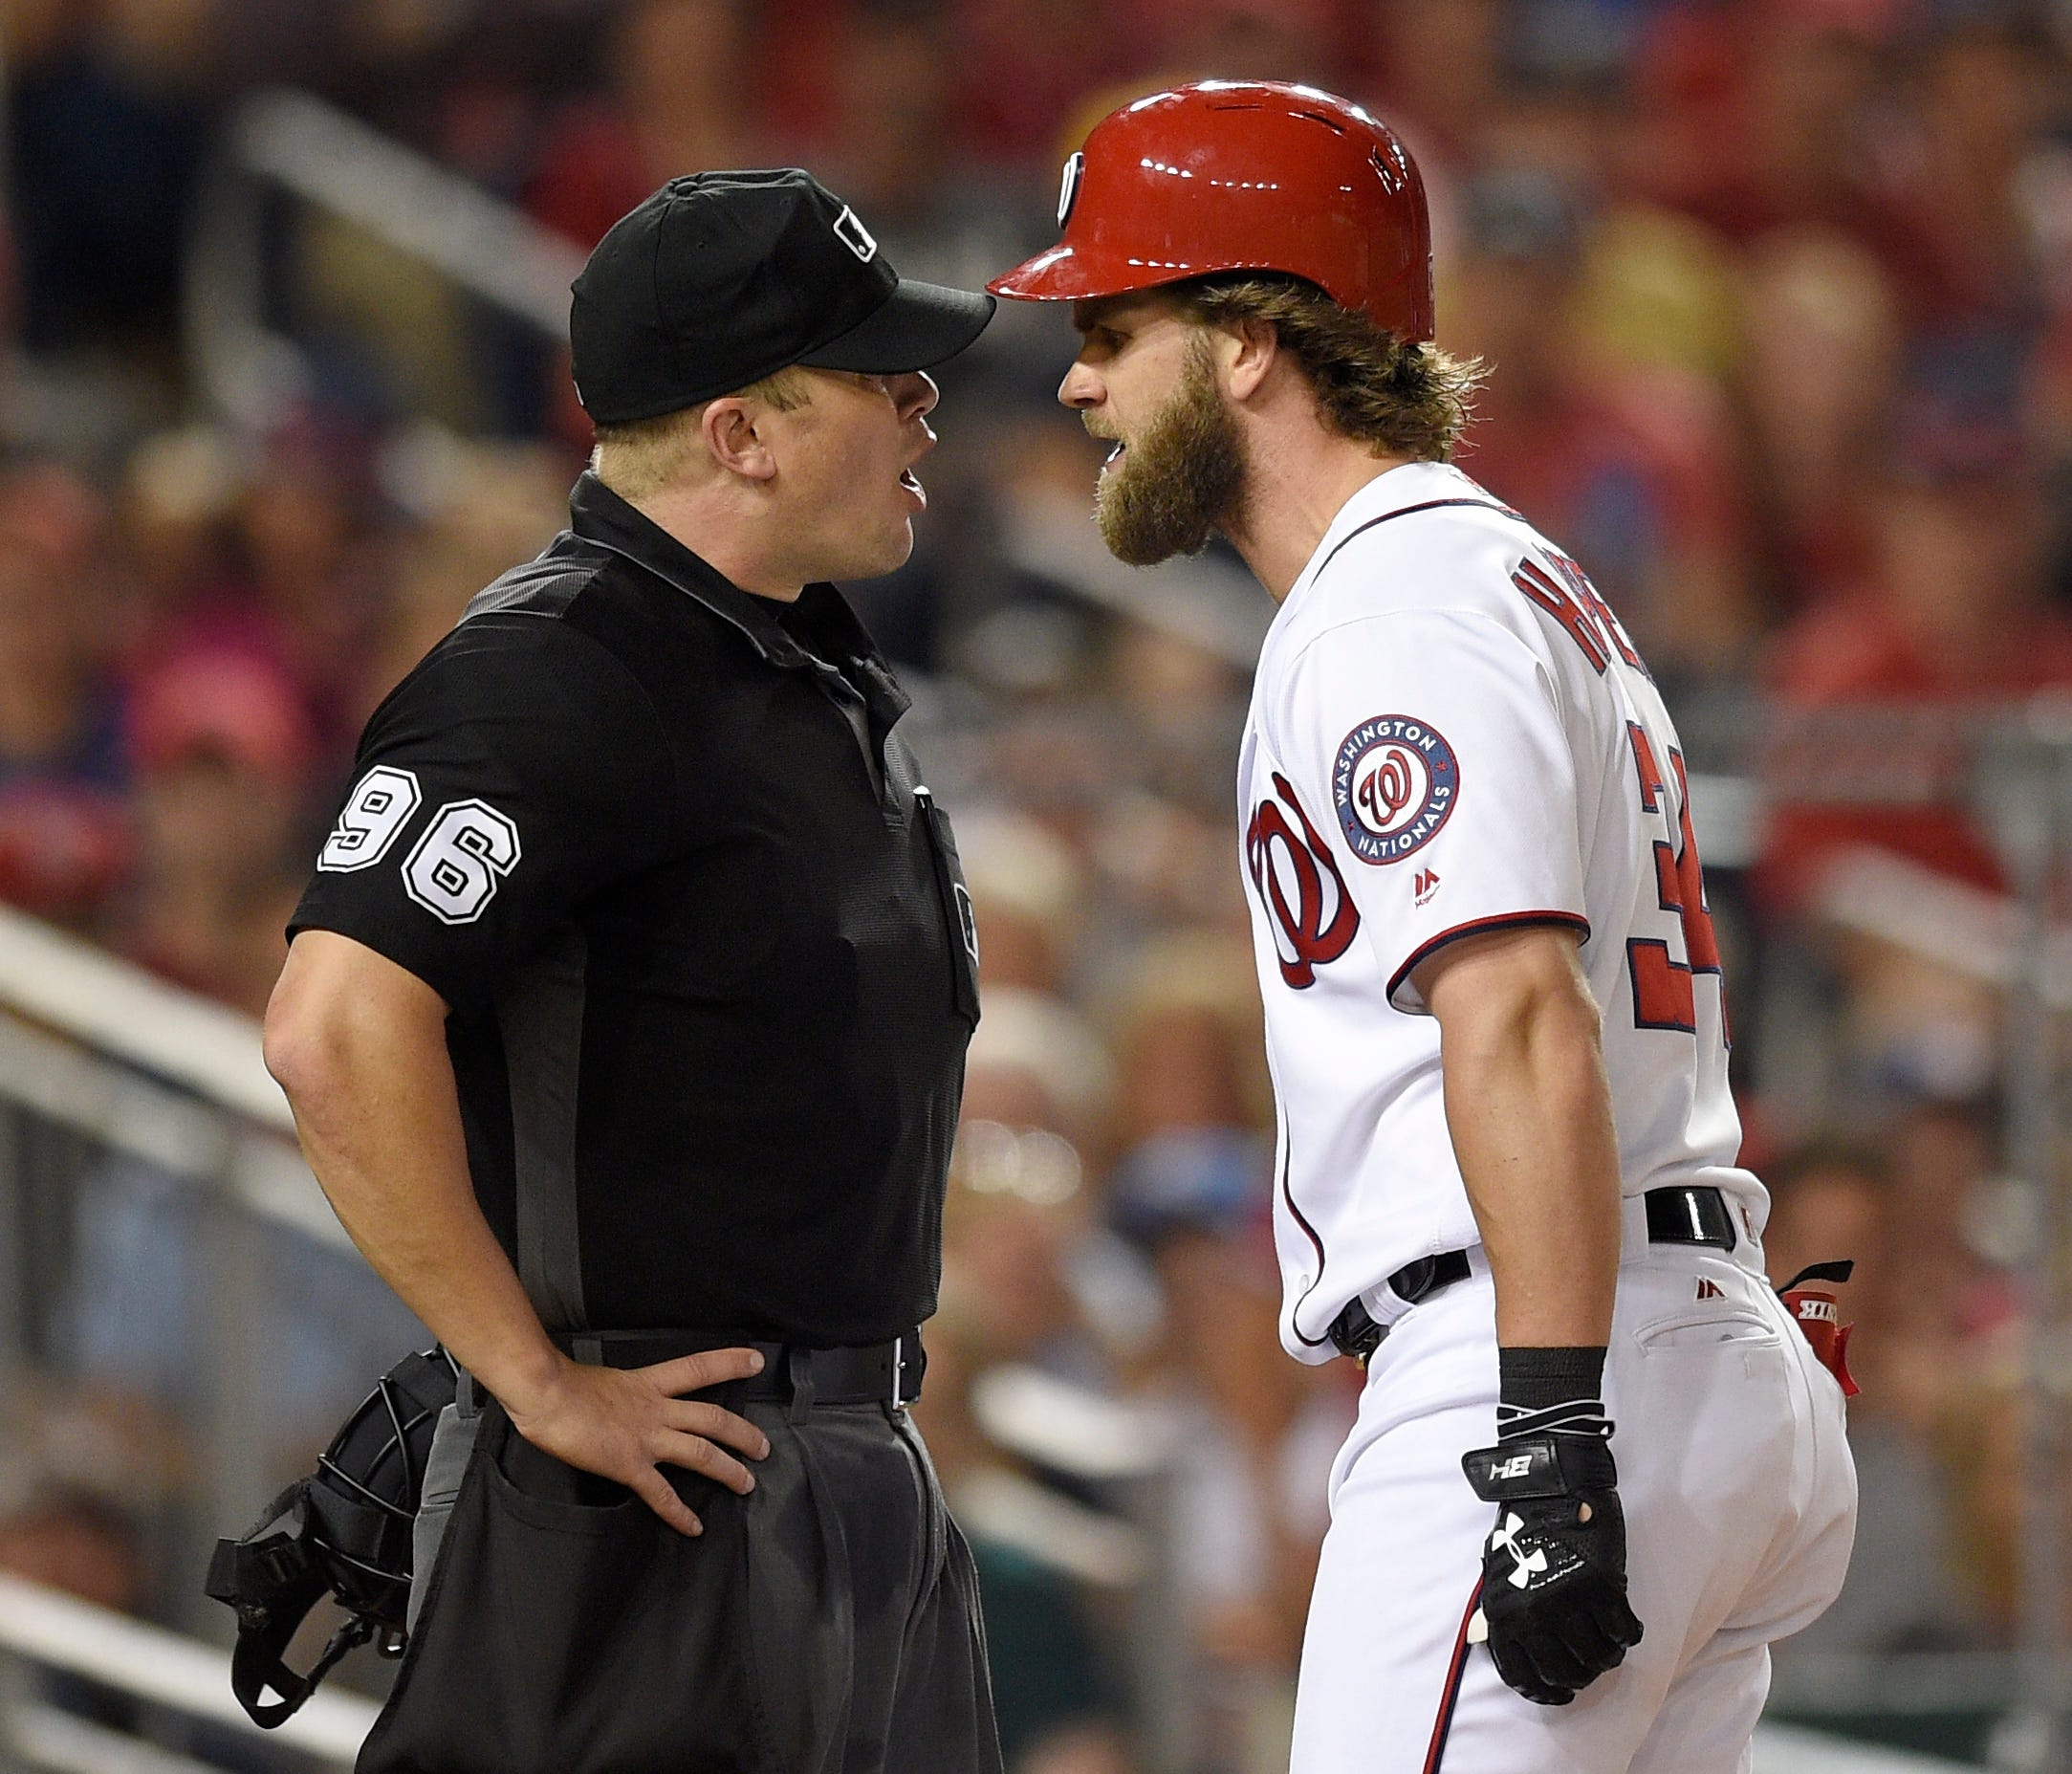 Washington Nationals' Bryce Harper (34) argues after he was ejected from the baseball game by home plate umpire Chris Segal, left, after he struck out during the eighth inning against the Milwaukee Brewers, Wednesday, July 26, 2017, in Washington. Th